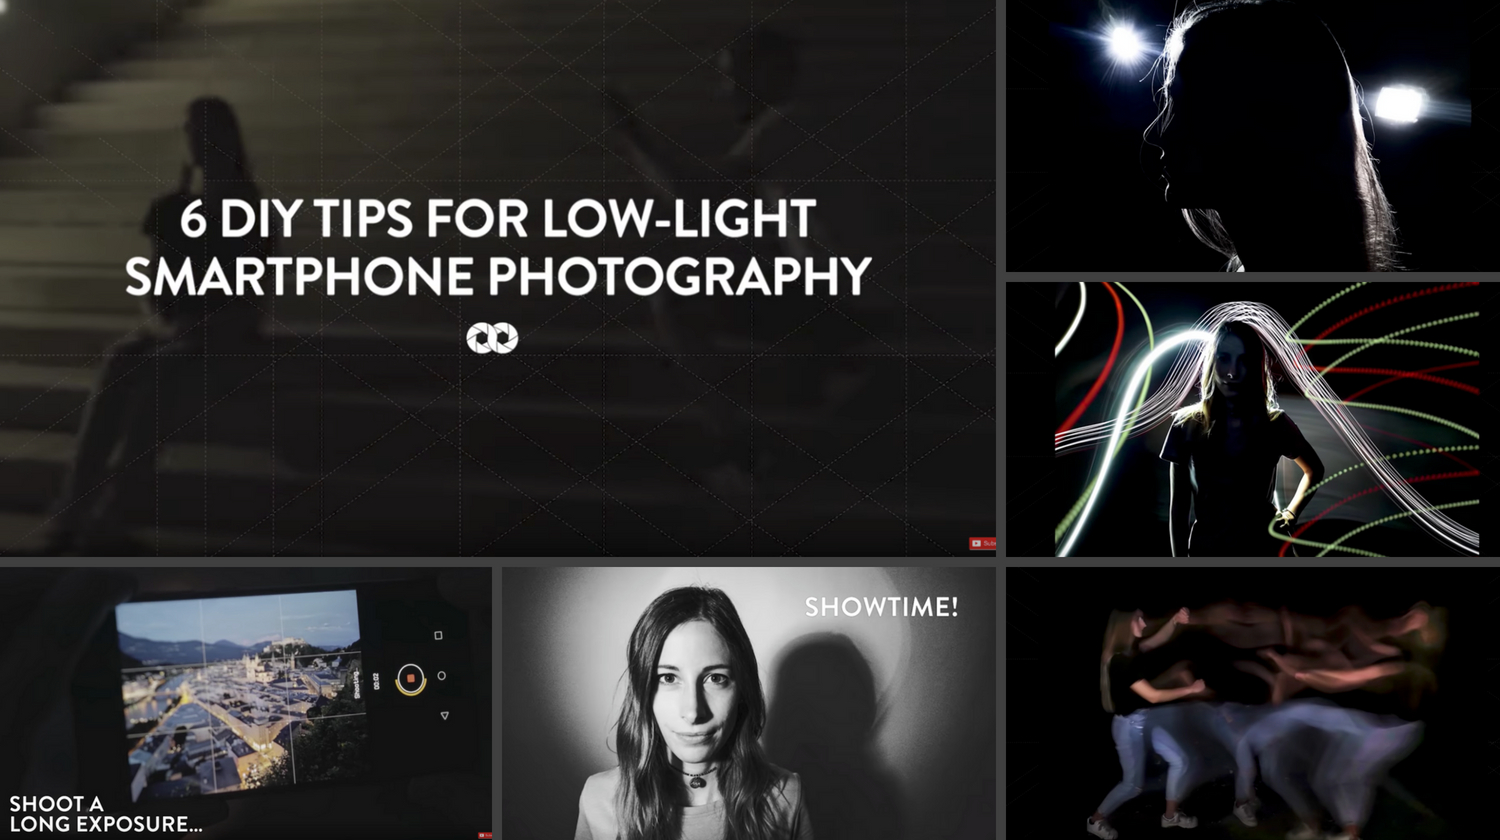 Low Light Smartphone Photography Tips  sc 1 st  Digital Photography School & 6 Quick Tips for Low Light Smartphone Photography